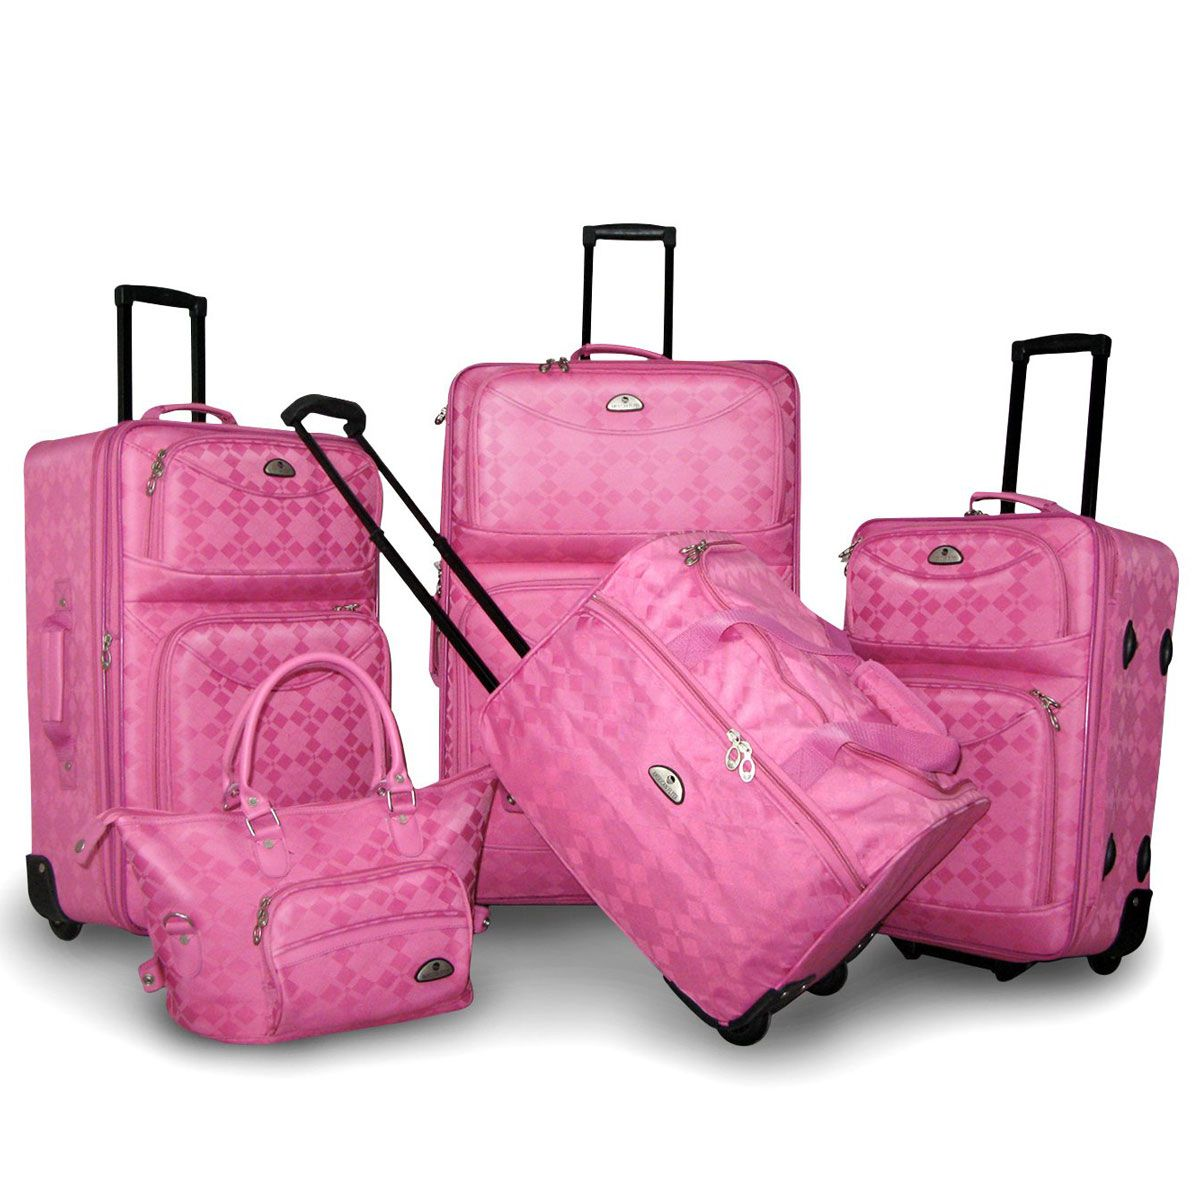 Pink Luggage Sets http://www.buynowsignal.com/garment-bag/pink ...